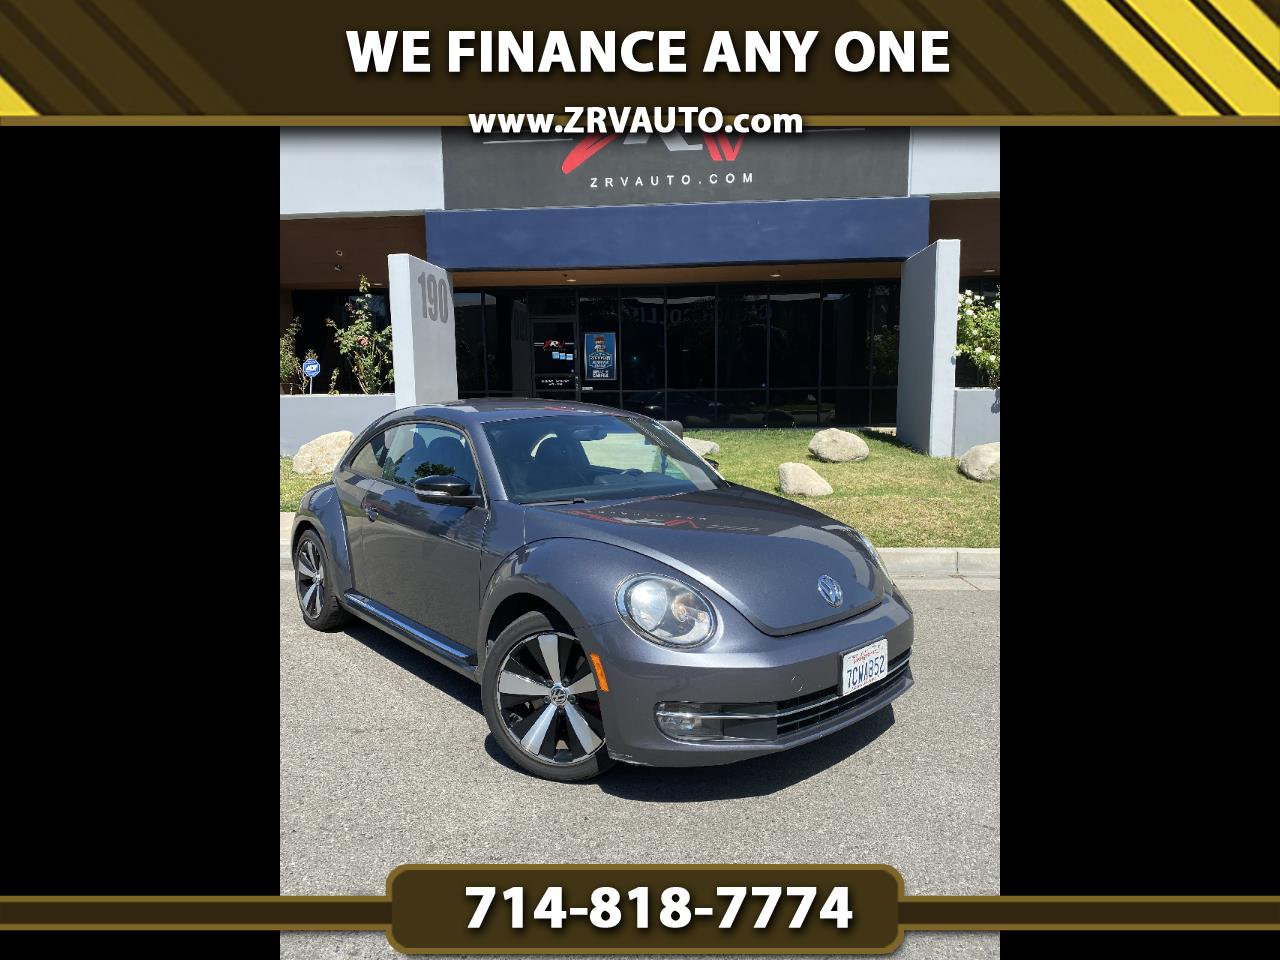 Volkswagen Beetle Coupe 2dr DSG 2.0T Turbo PZEV *Ltd Avail* 2013